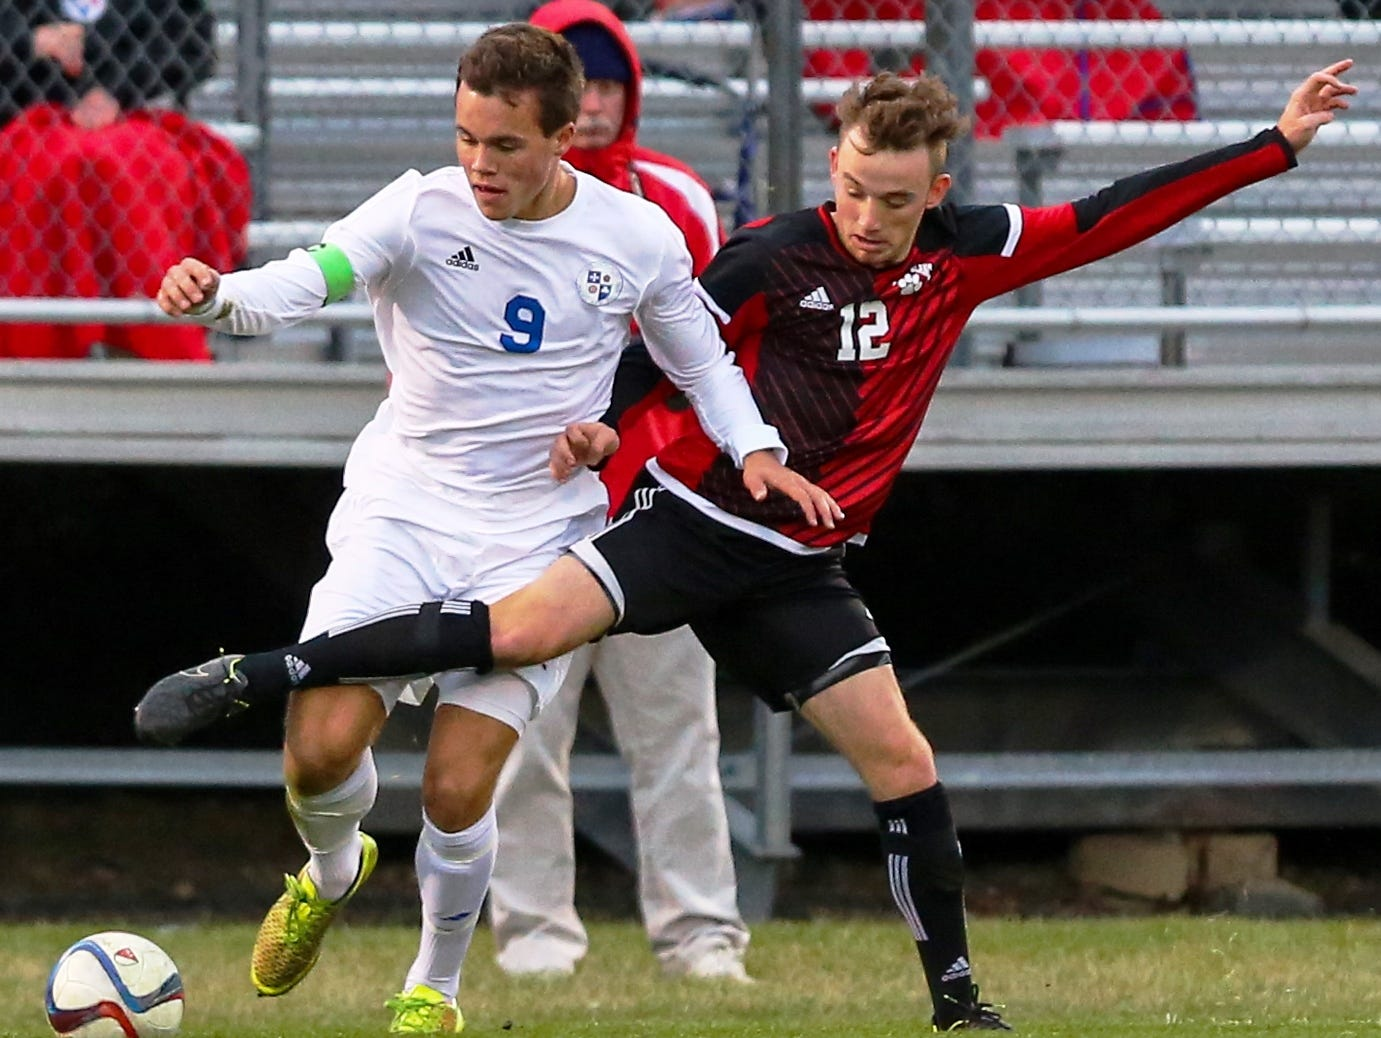 Catholic Central's Justin Murray (left) tries to keep possession against Grand Blanc's Dayton Rush.